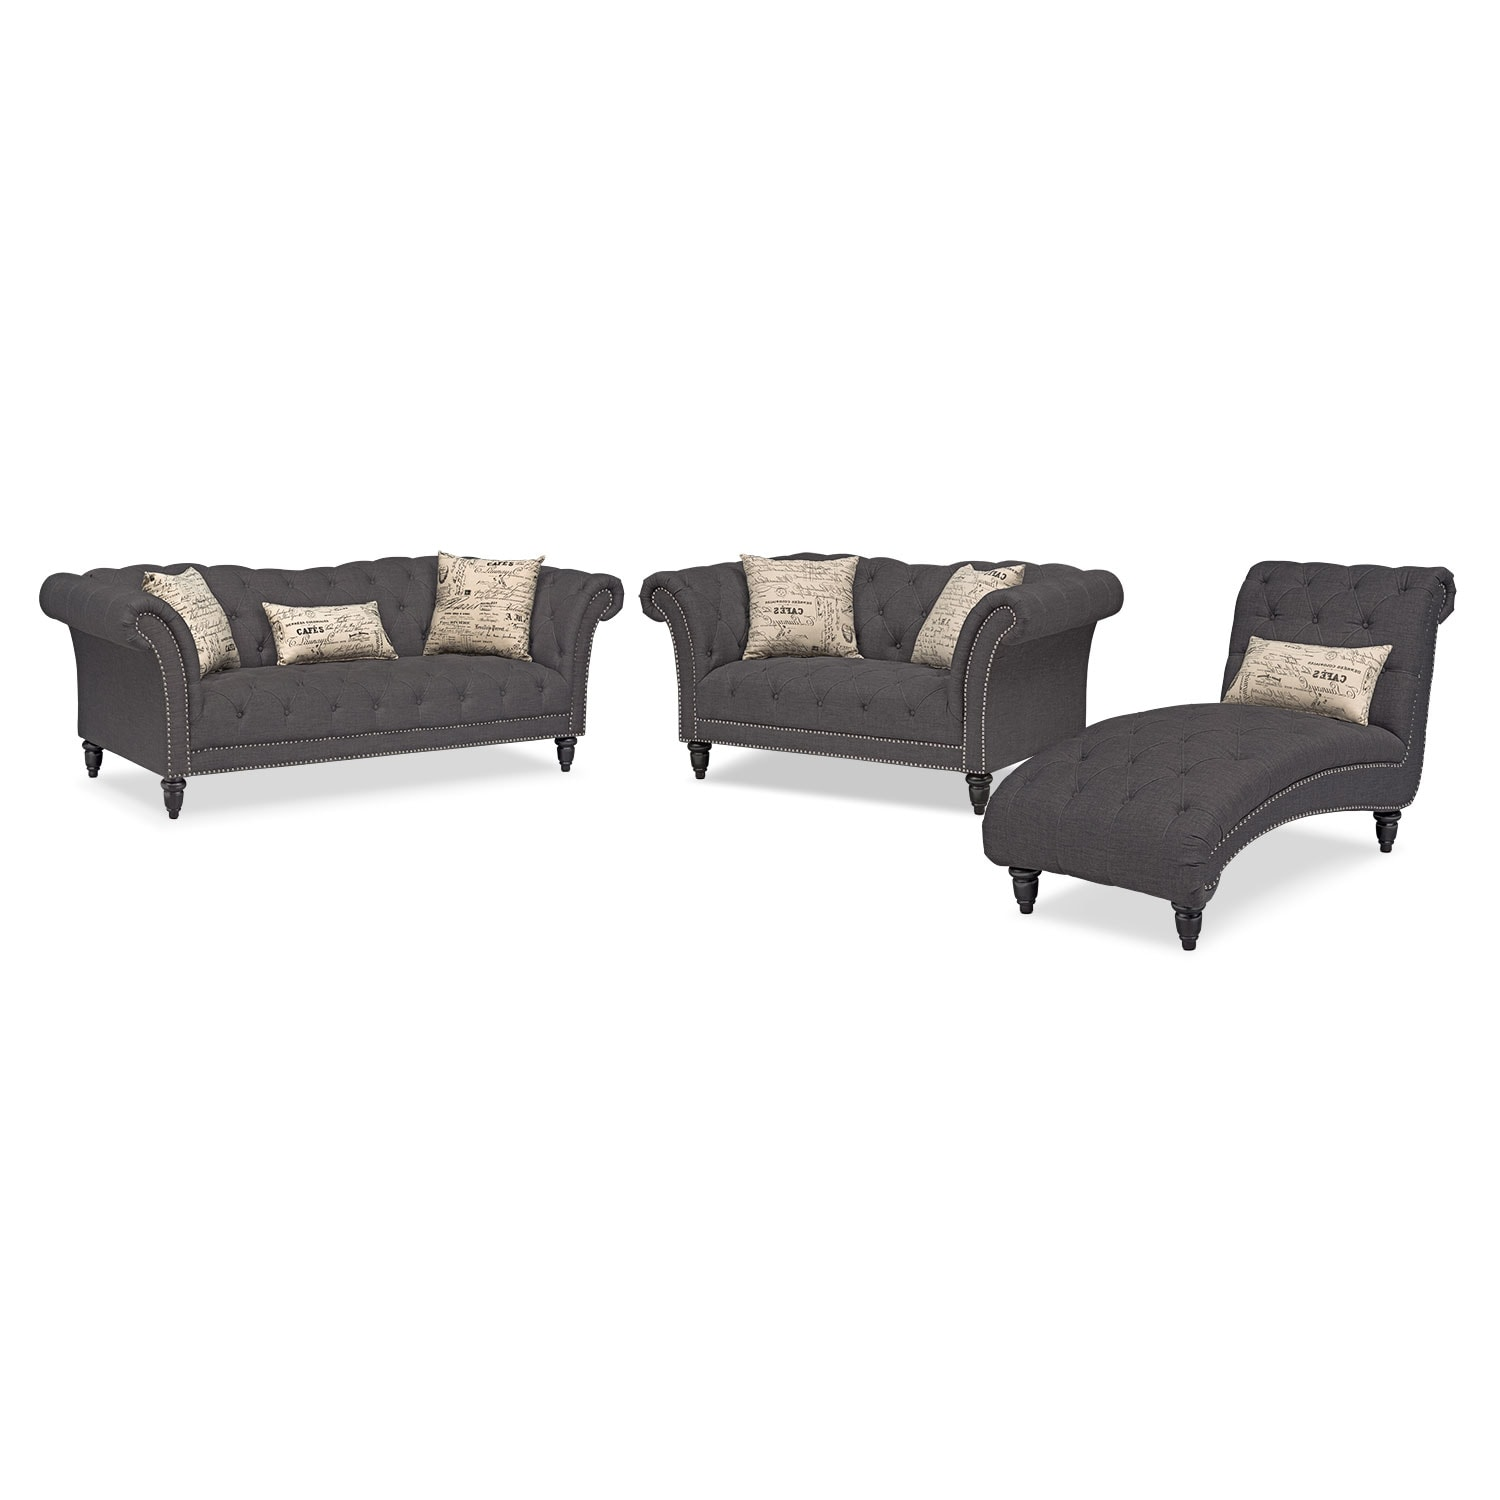 marisol sofa loveseat and chaise set charcoal value